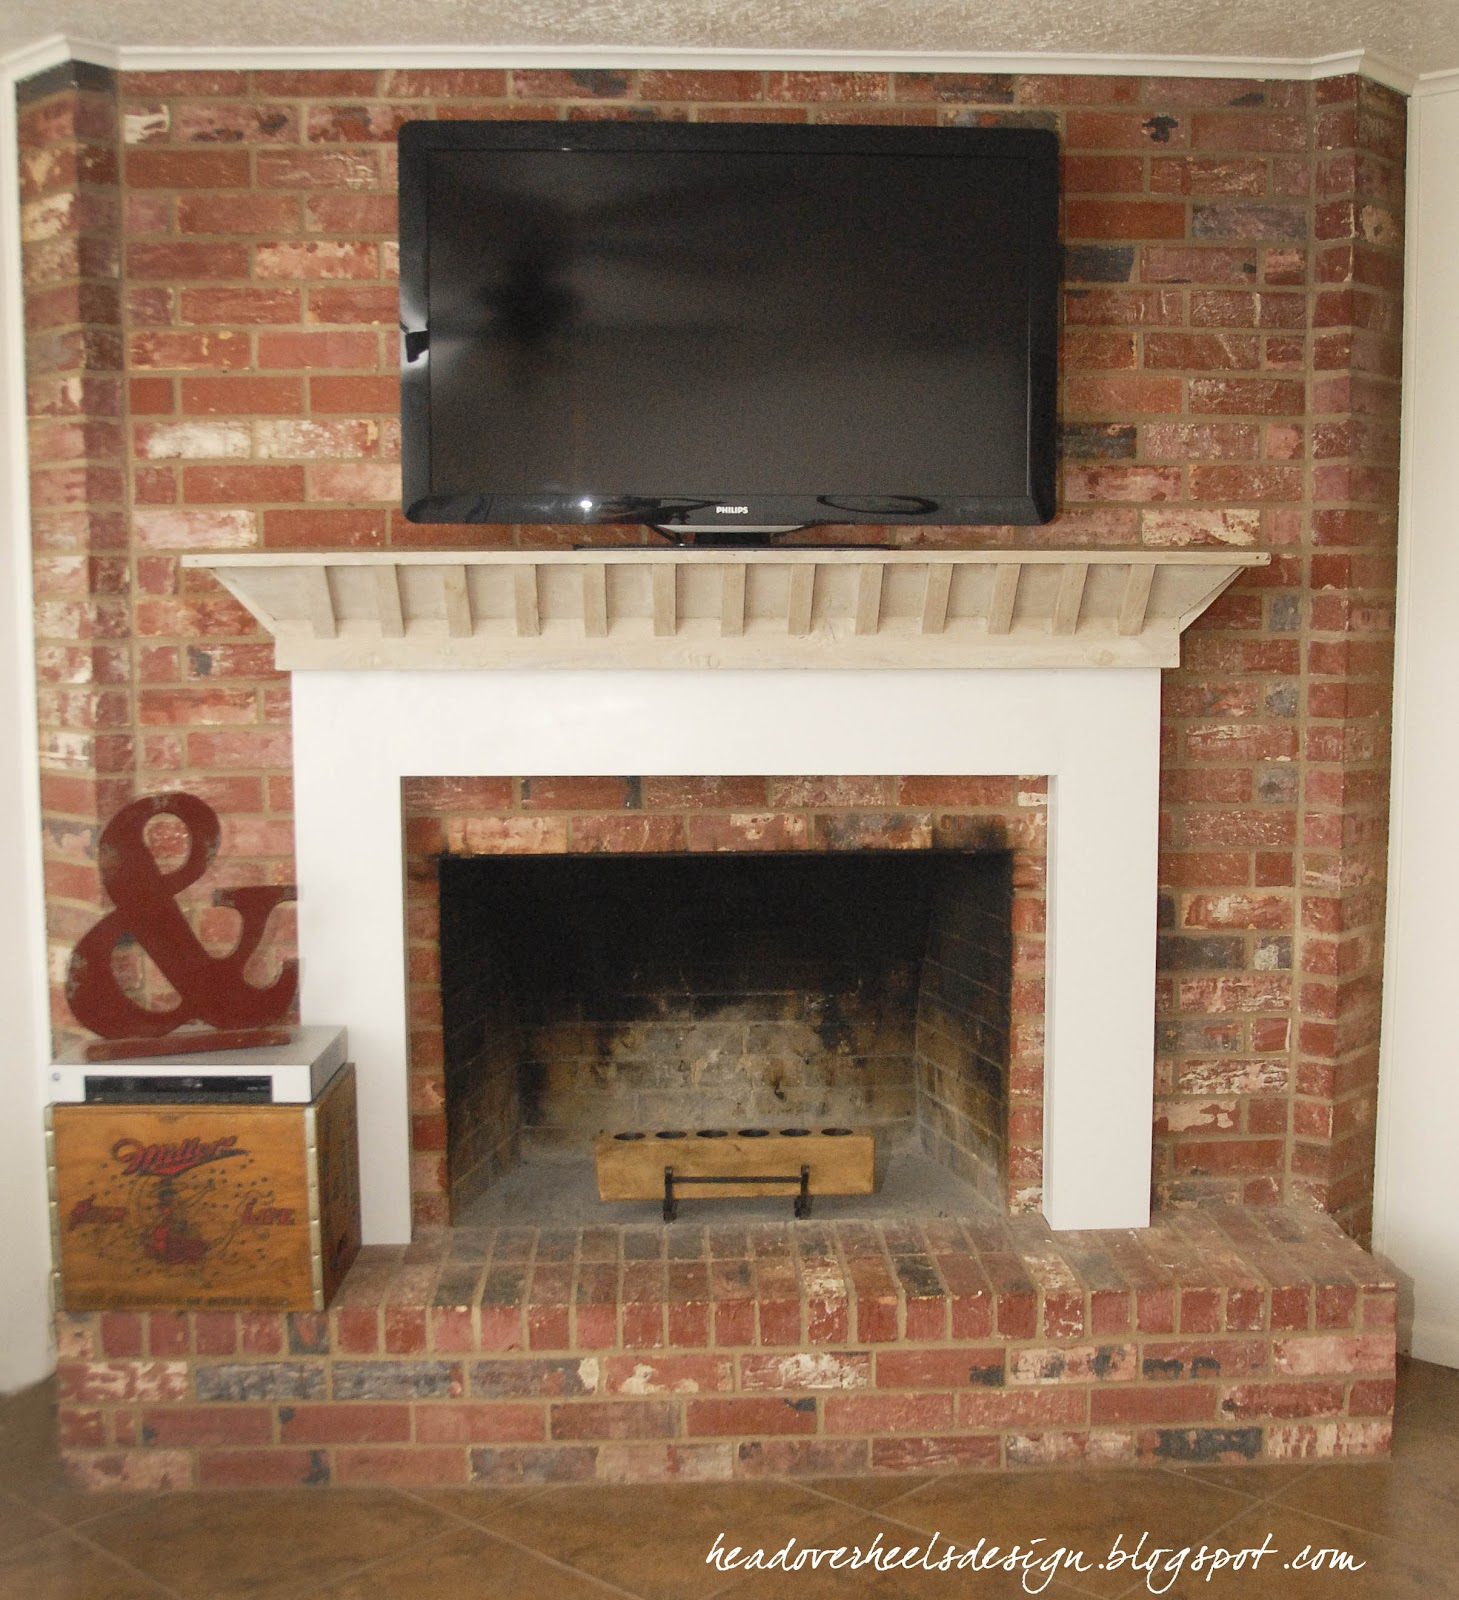 Red bricks fireplaces decor fireplaces black fireplaces mantels fireplaces design whitewash - Brick fireplace surrounds ideas ...